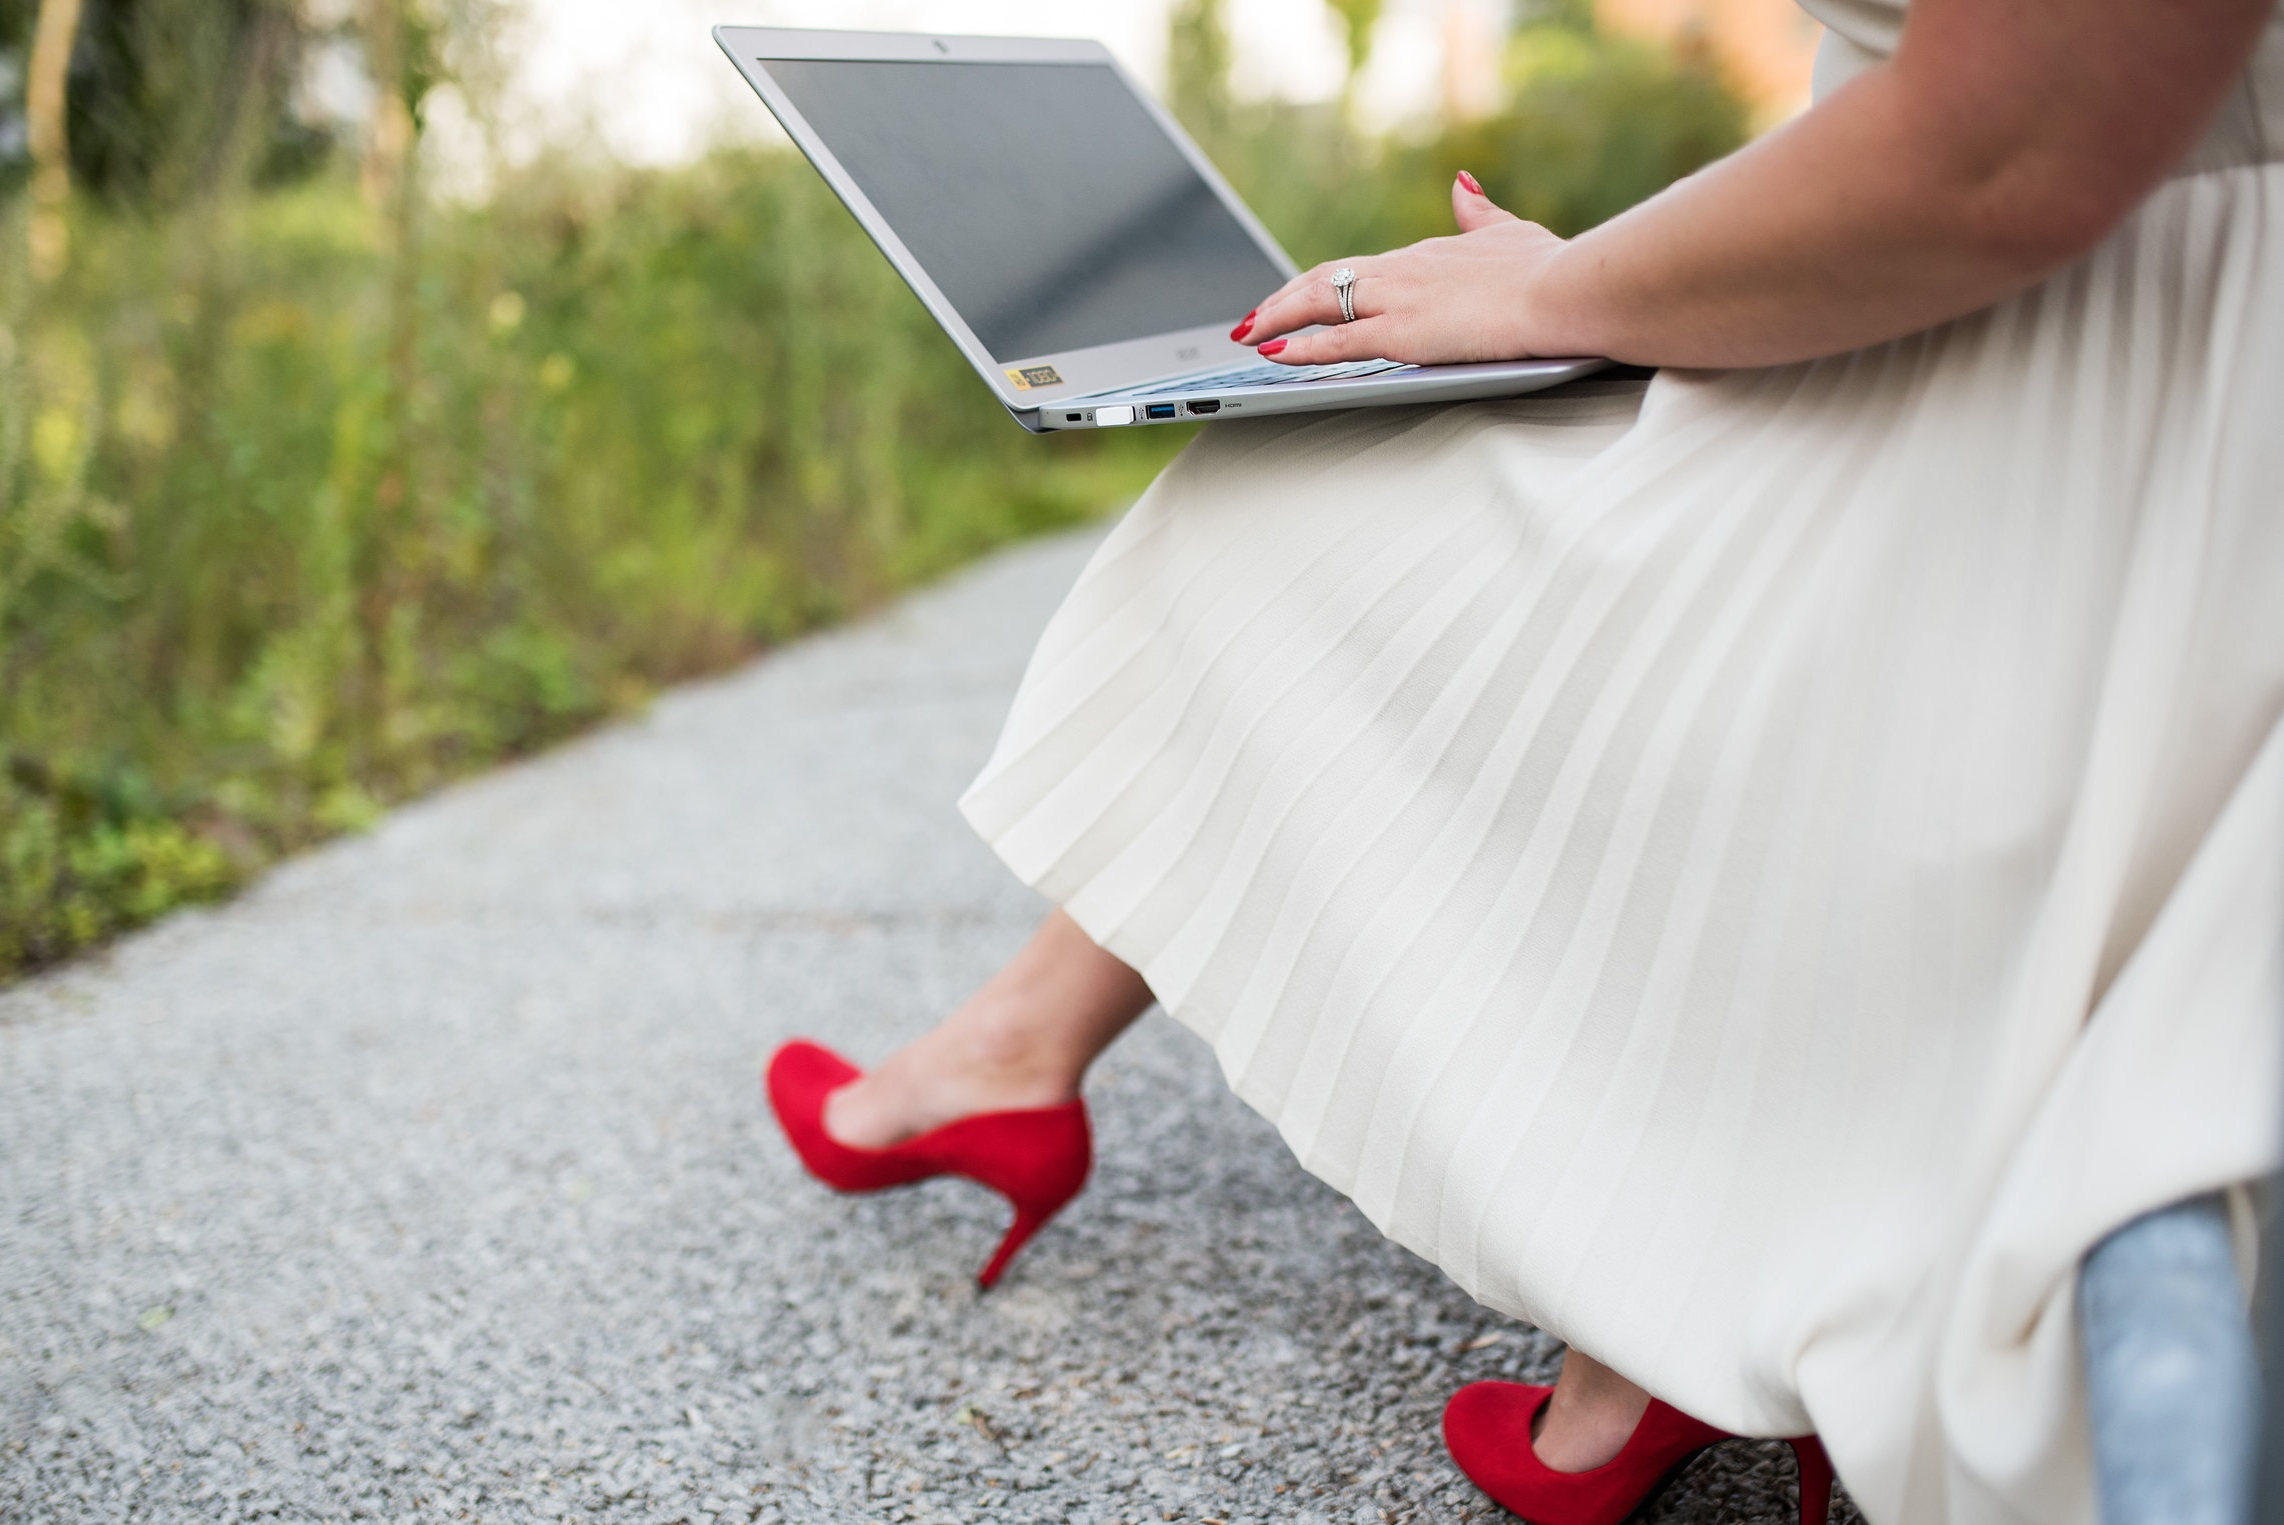 Computer+-+Red+Shoes.jpg